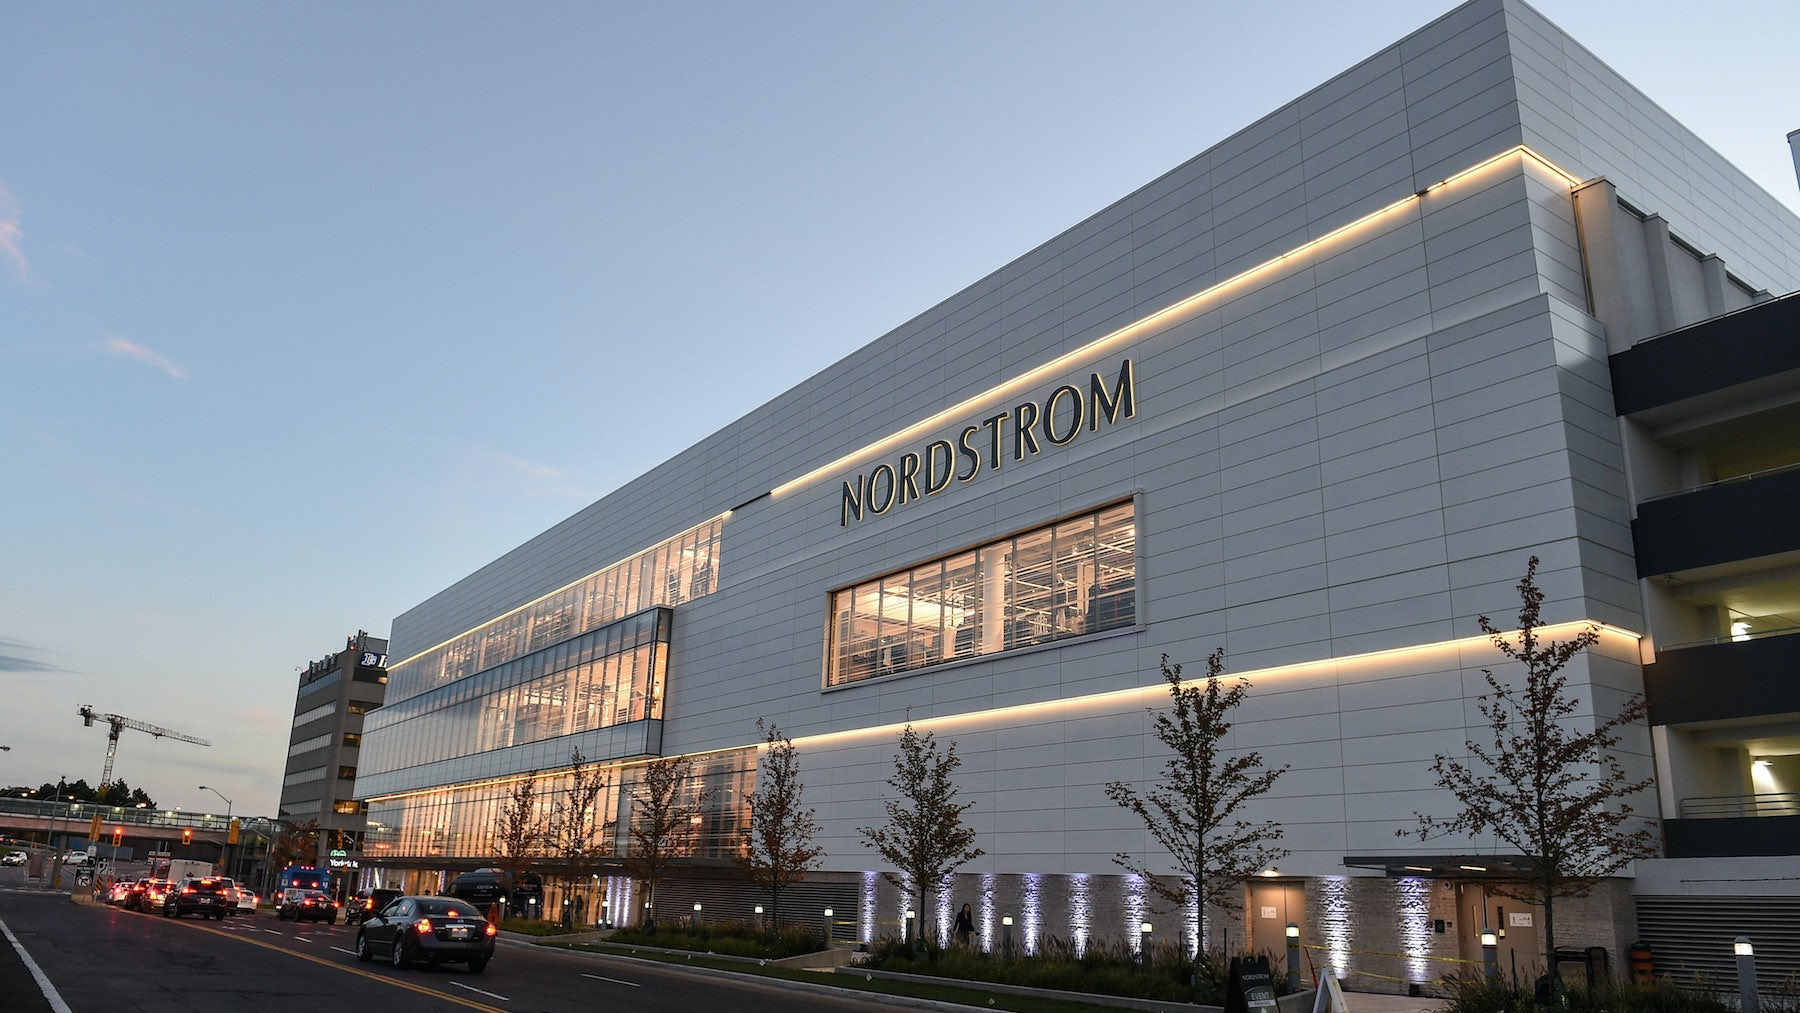 Nordstrom is expected to outline plans for 2021 at its investor event this week | Source: Courtesy